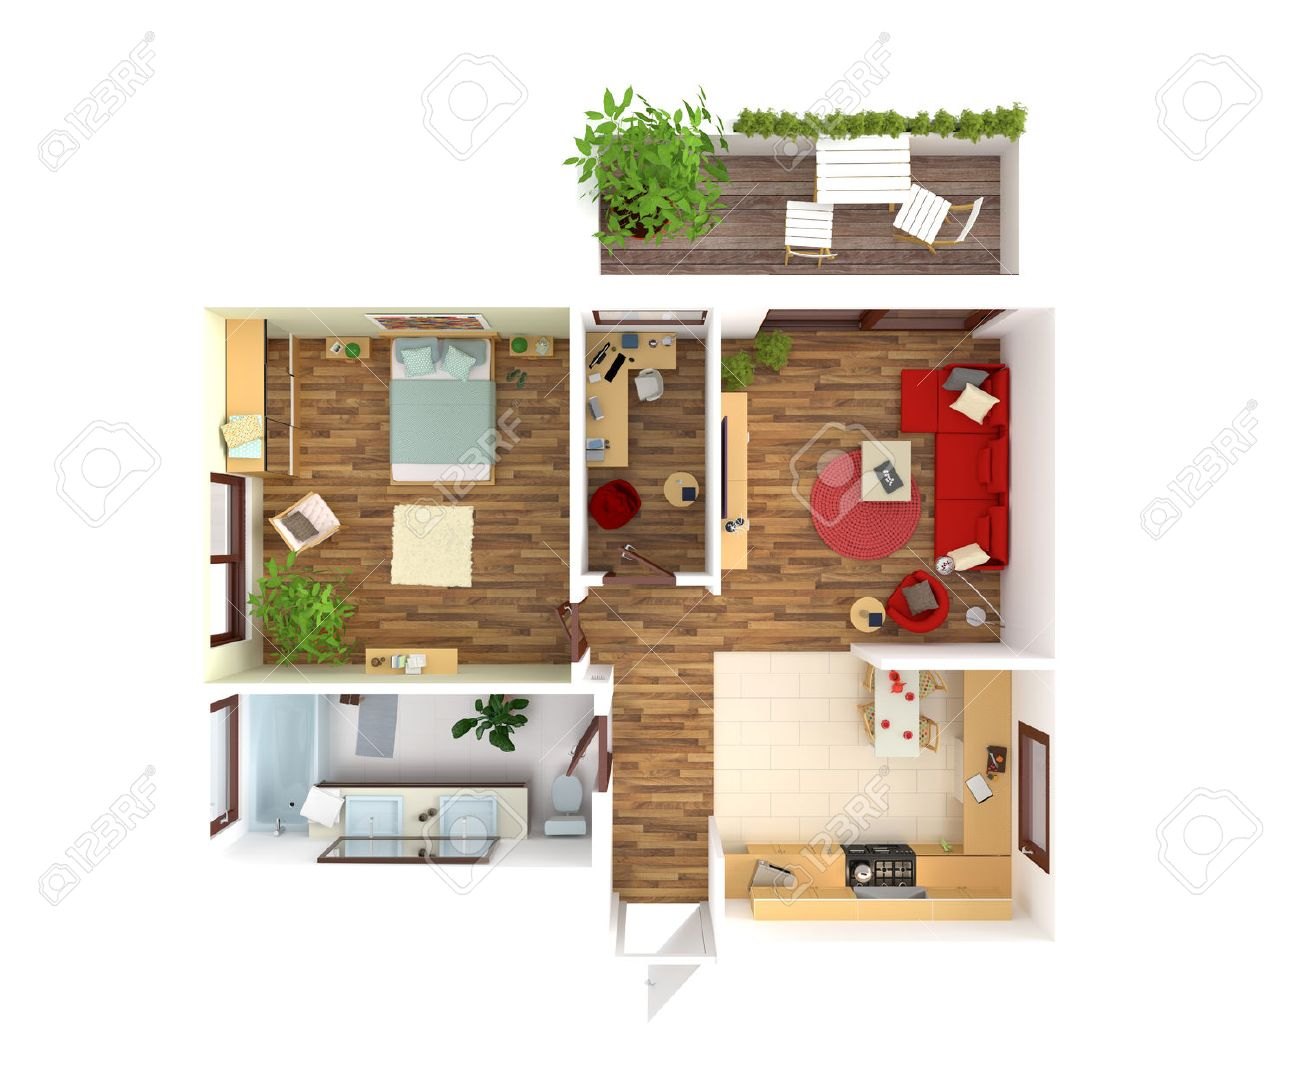 Houses For Living And Their Plan View